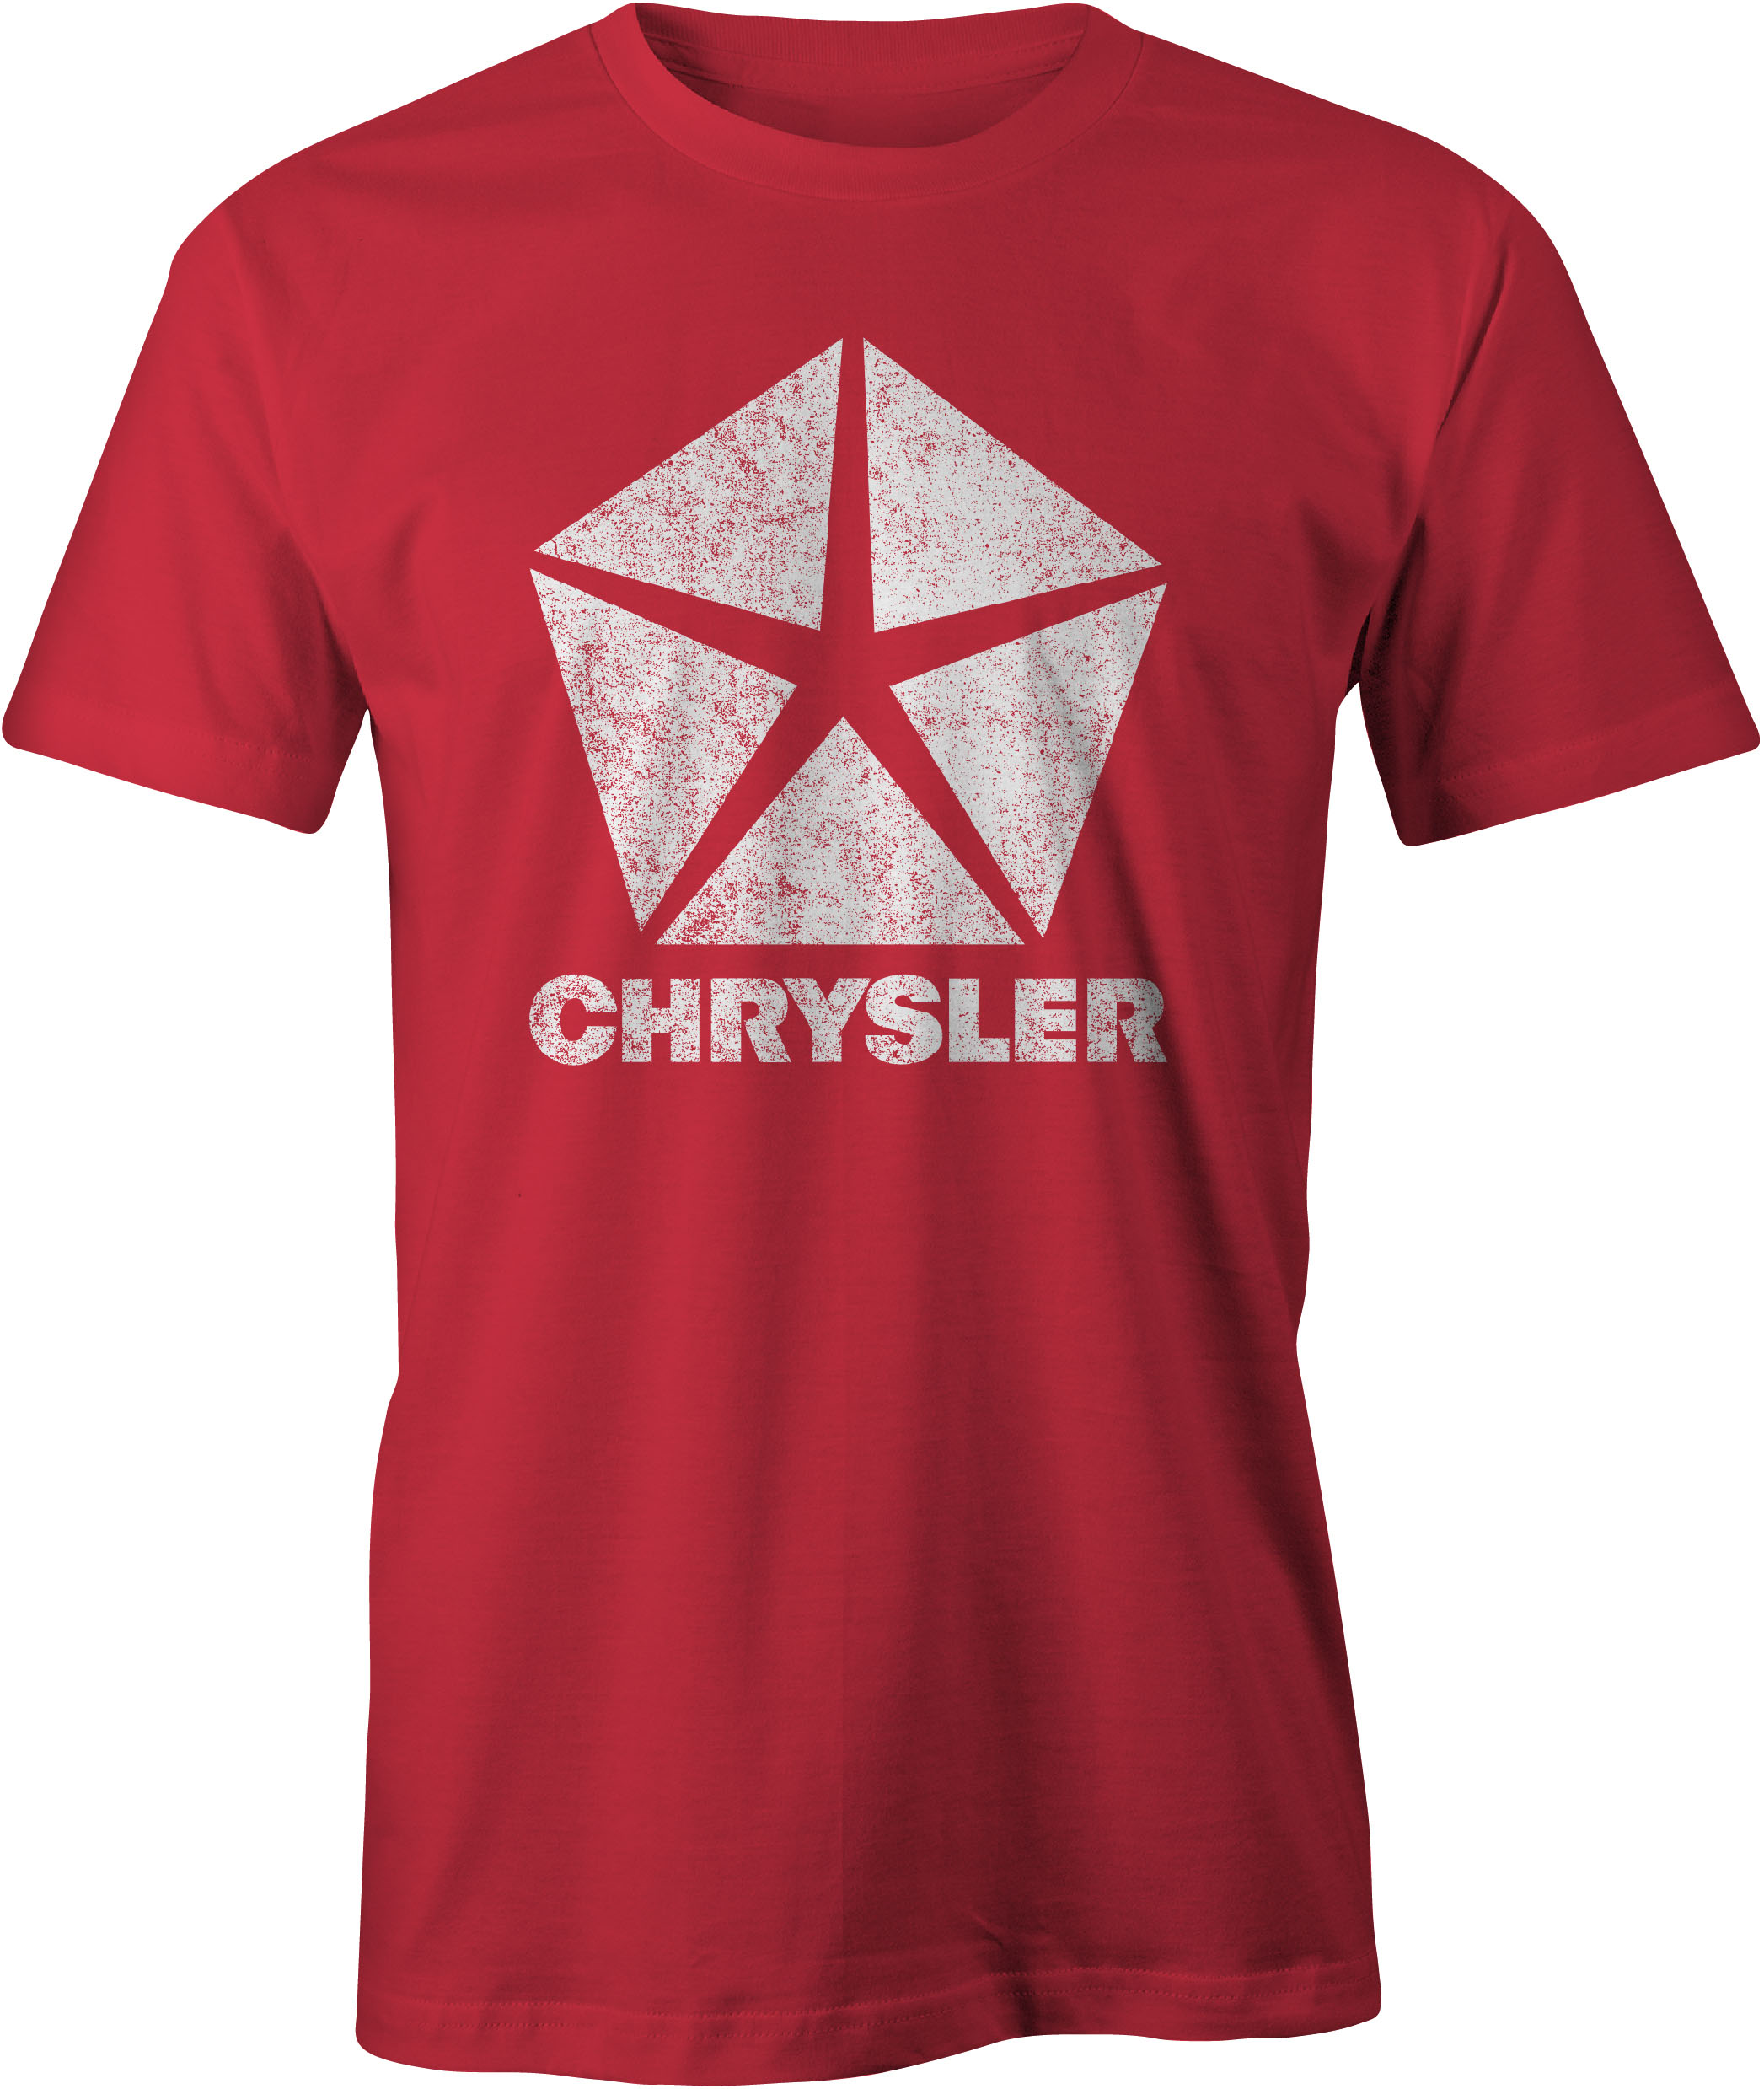 Chrysler Pentastar Logo T Shirt Red